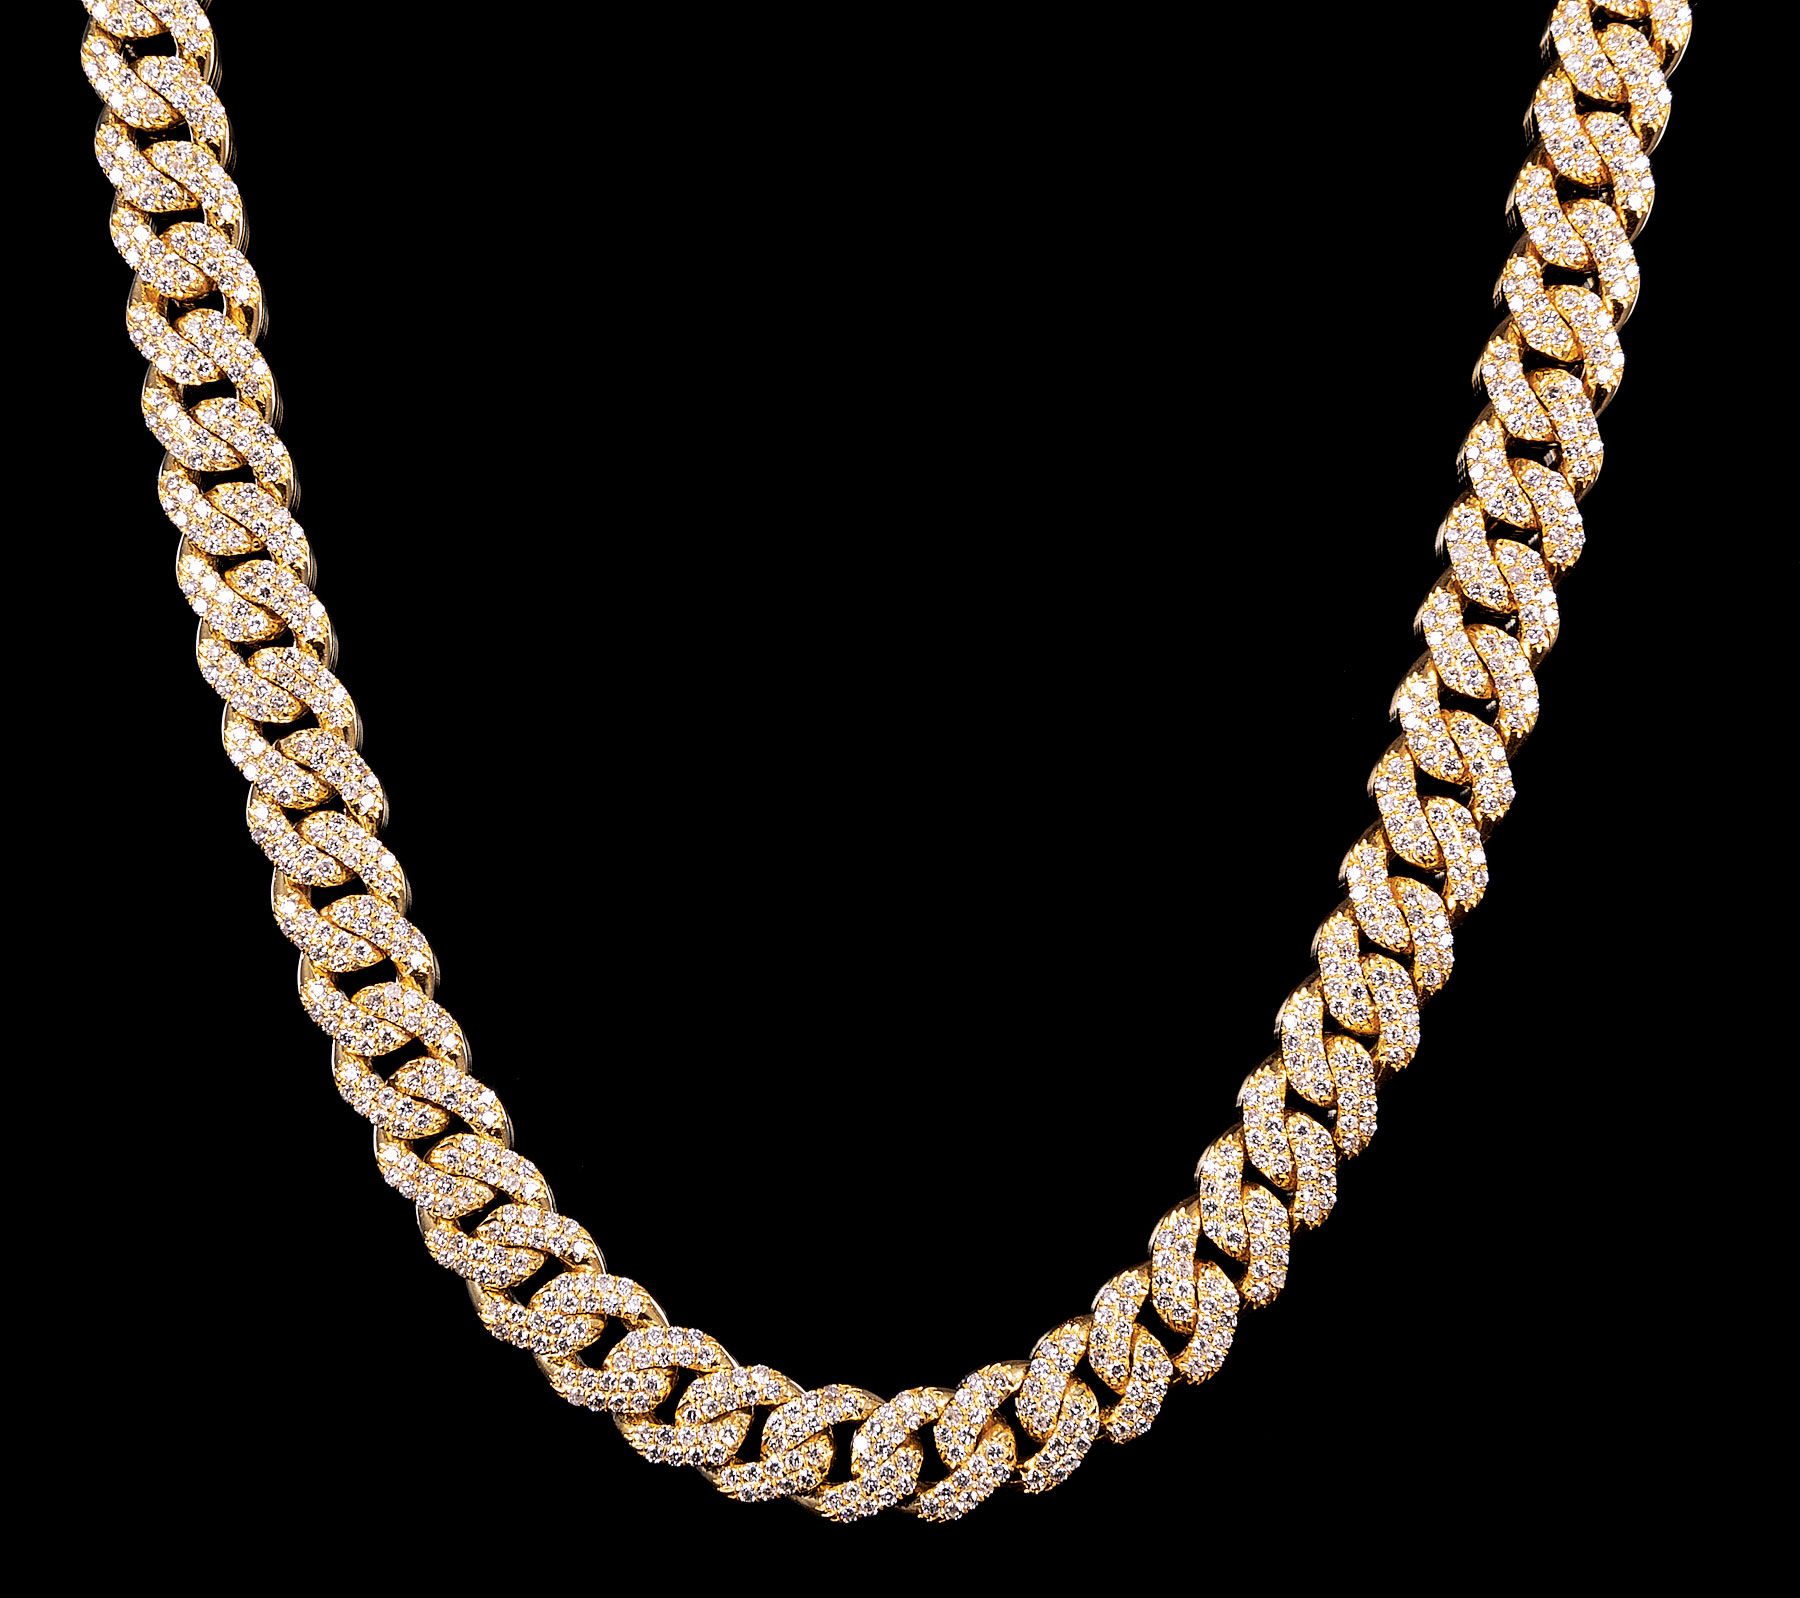 Lot 572 - 14 kt. Yellow Gold and Diamond Curb Chain Necklace , diamond total wt. approx. 14.50 cts., l. 18 in